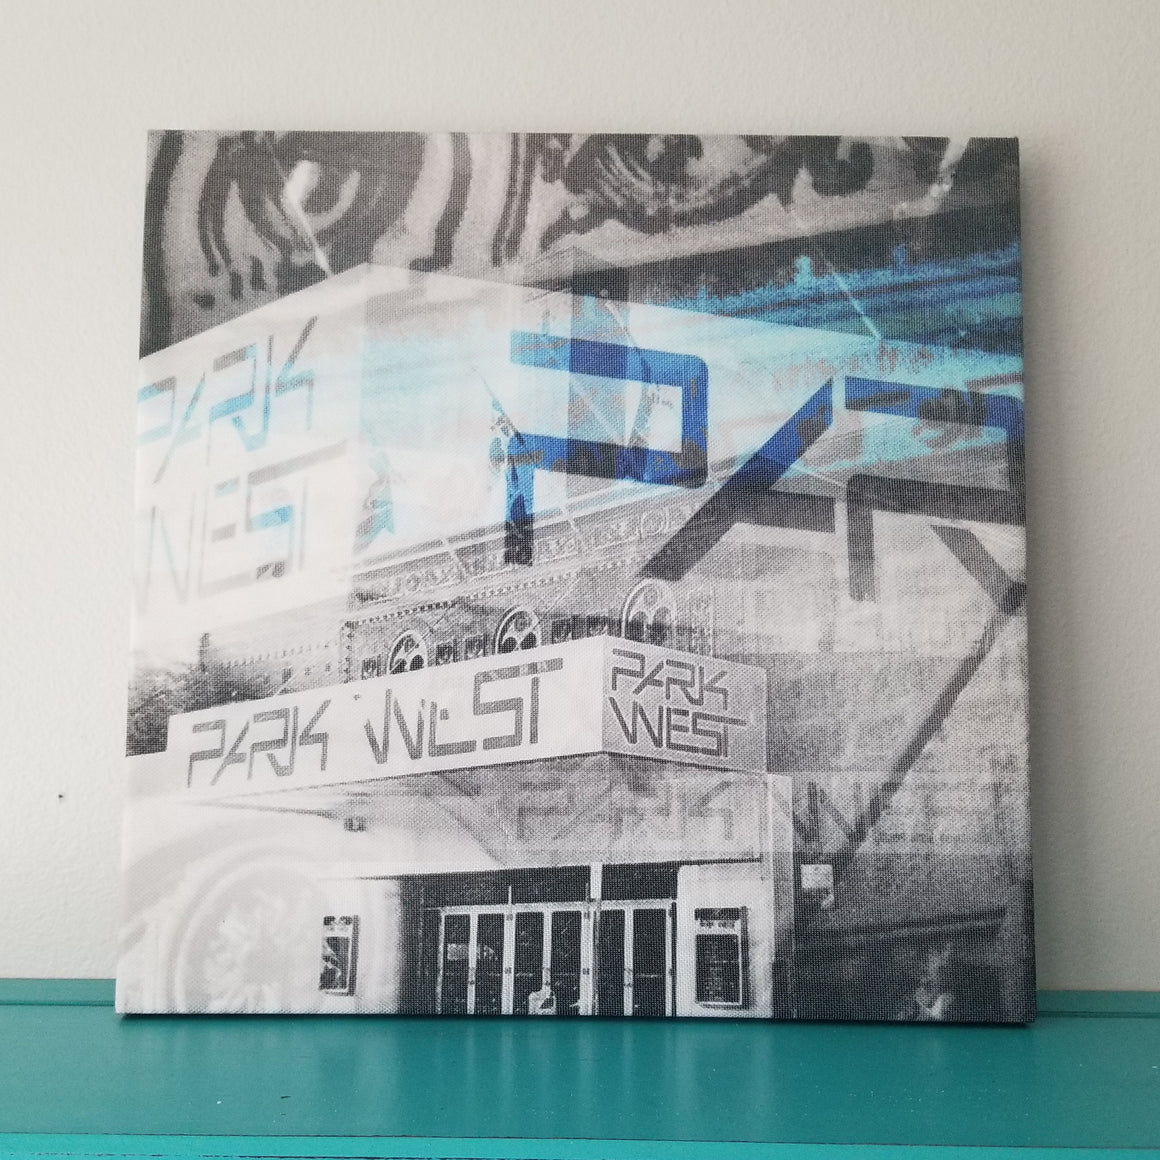 "Park West - Chicago 13"" Canvas Wall Art - Photo Collage"